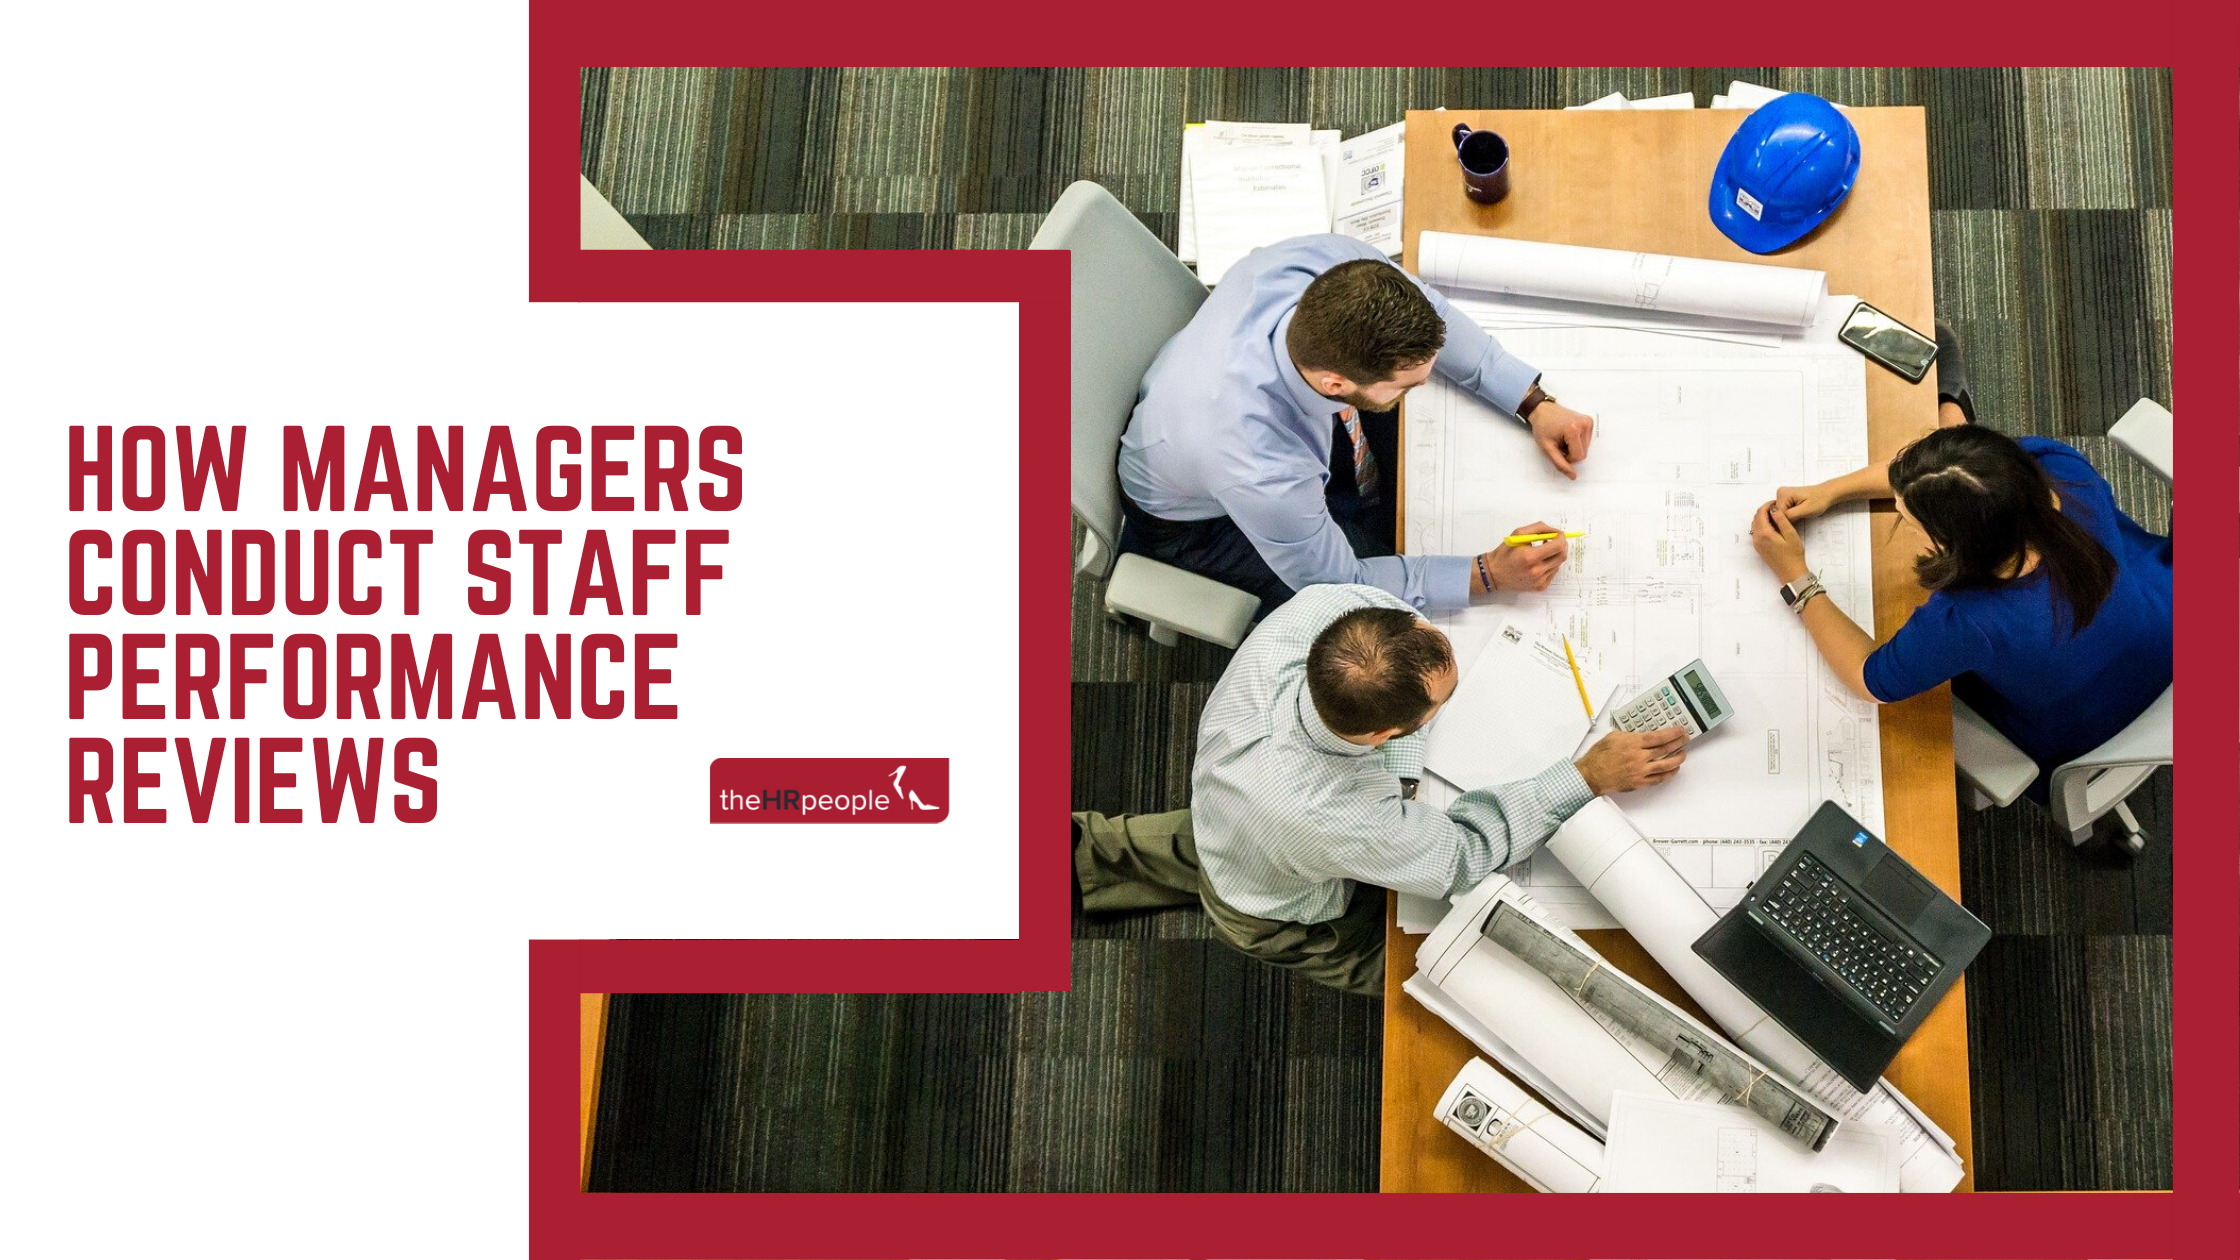 Learn How Managers Conduct Staff Performance Reviews